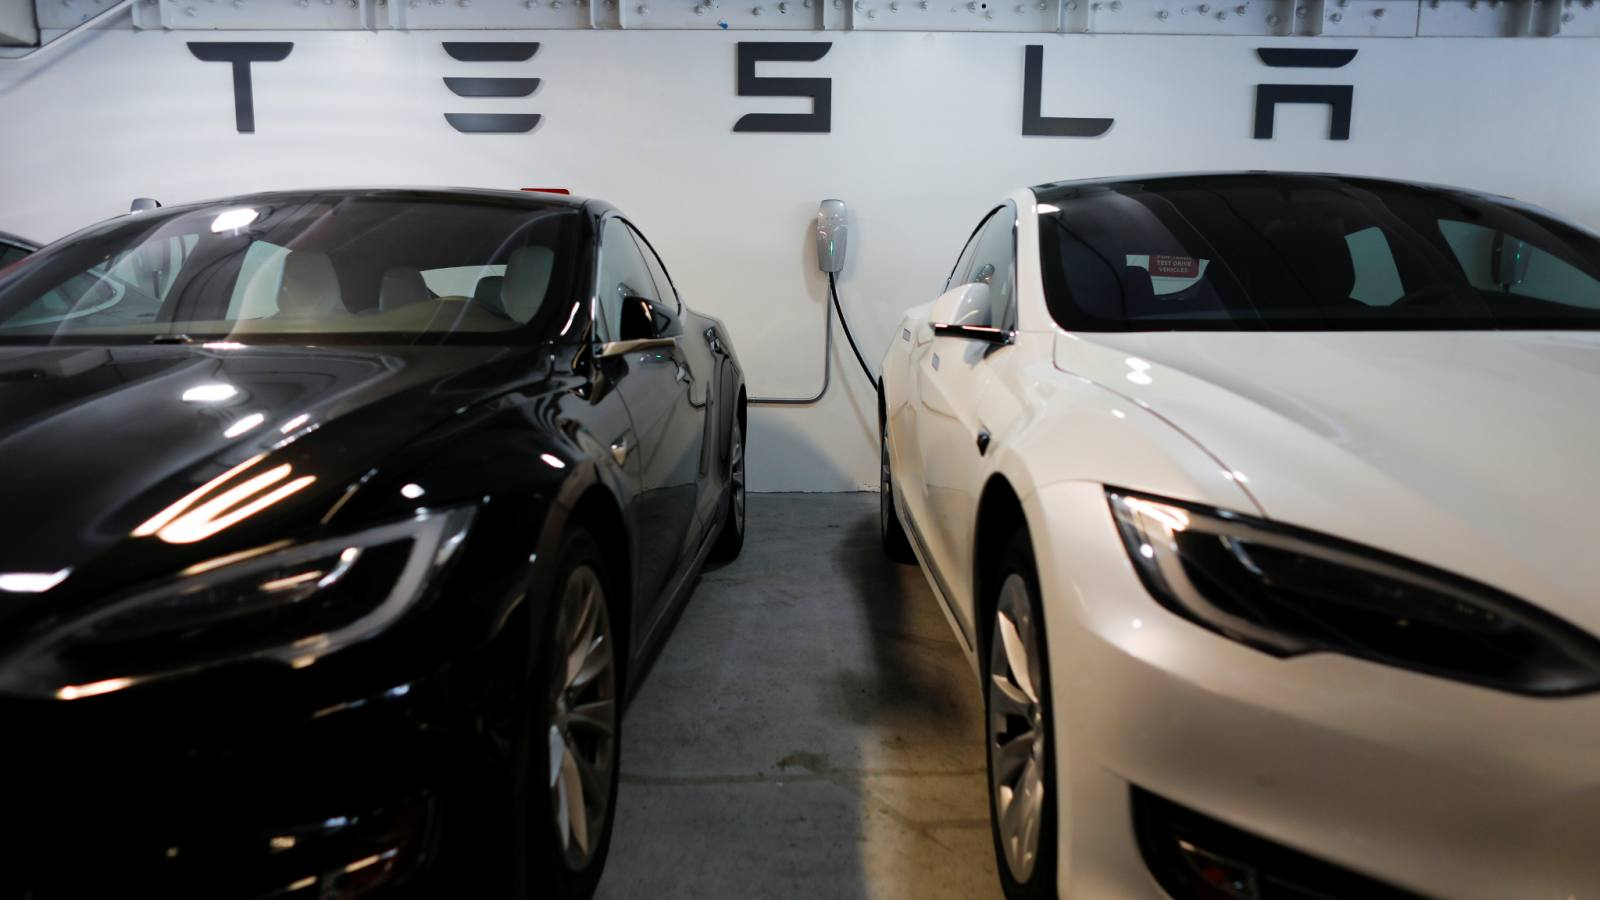 Tesla has faced difficulties launching mass production of the Model 3.